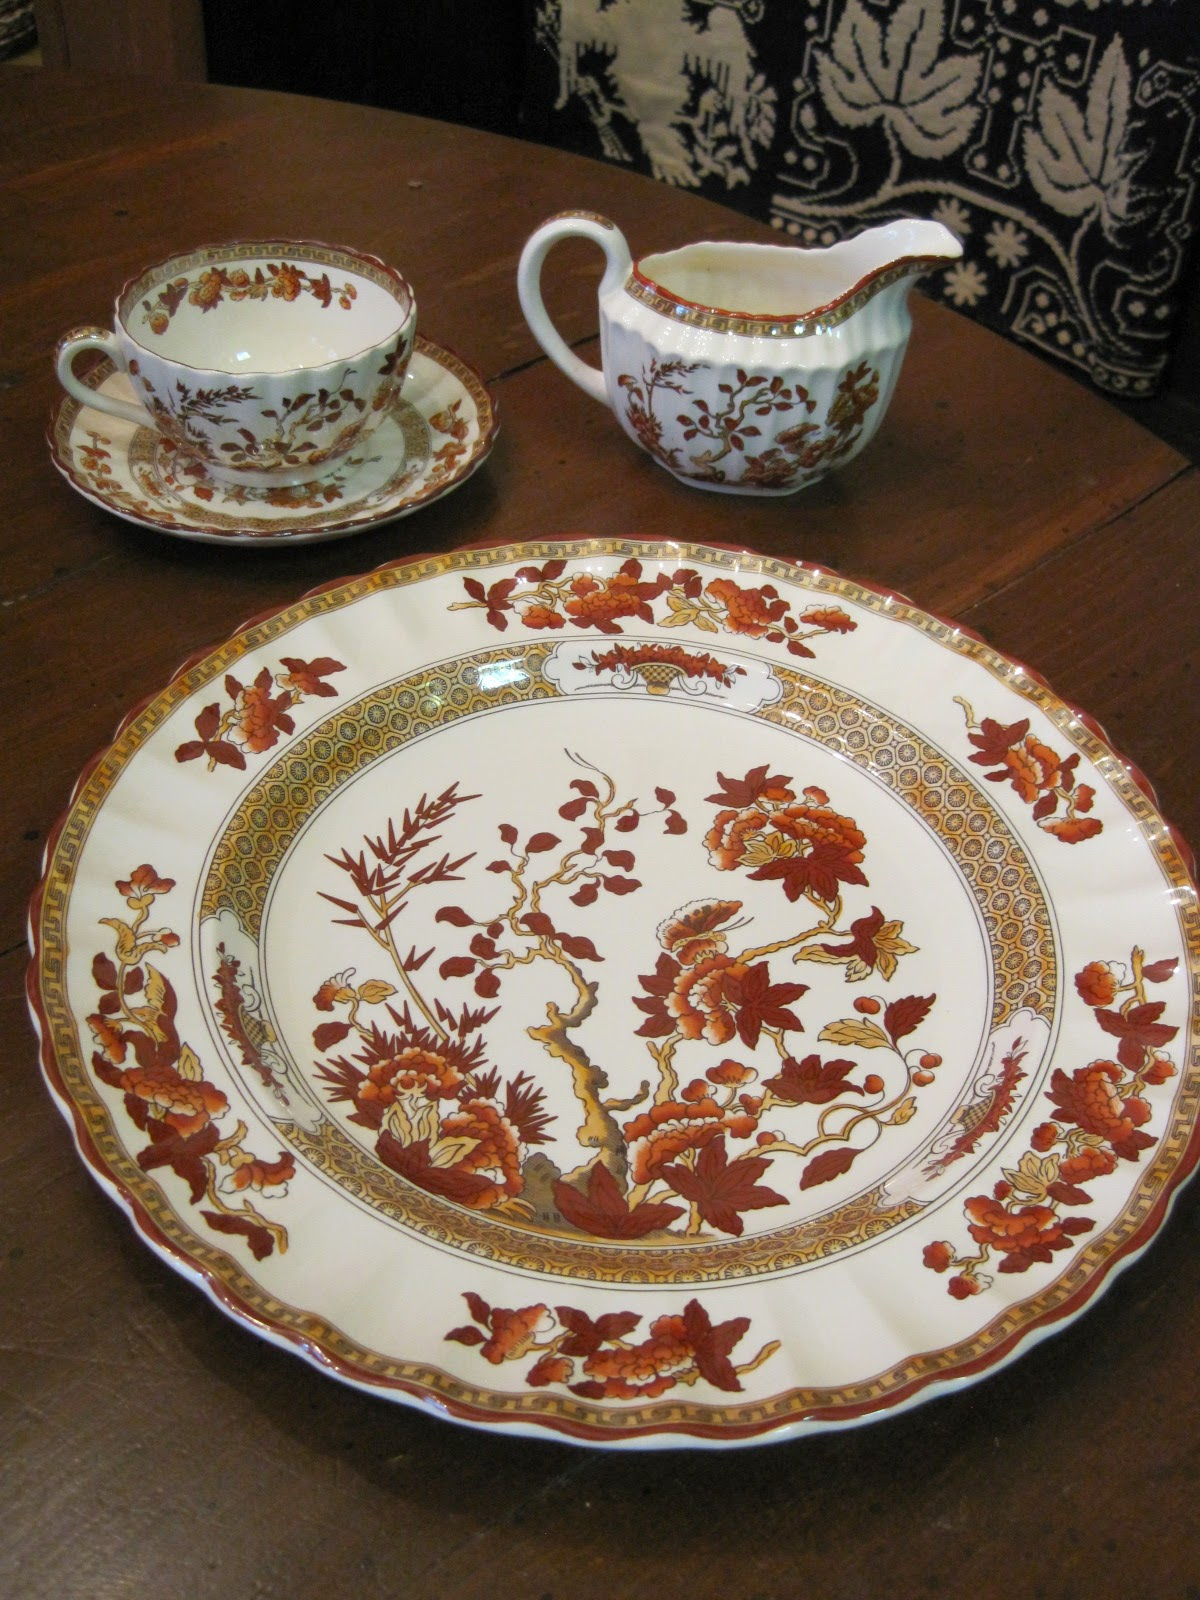 Spode China Patterns Magnificent Design Ideas